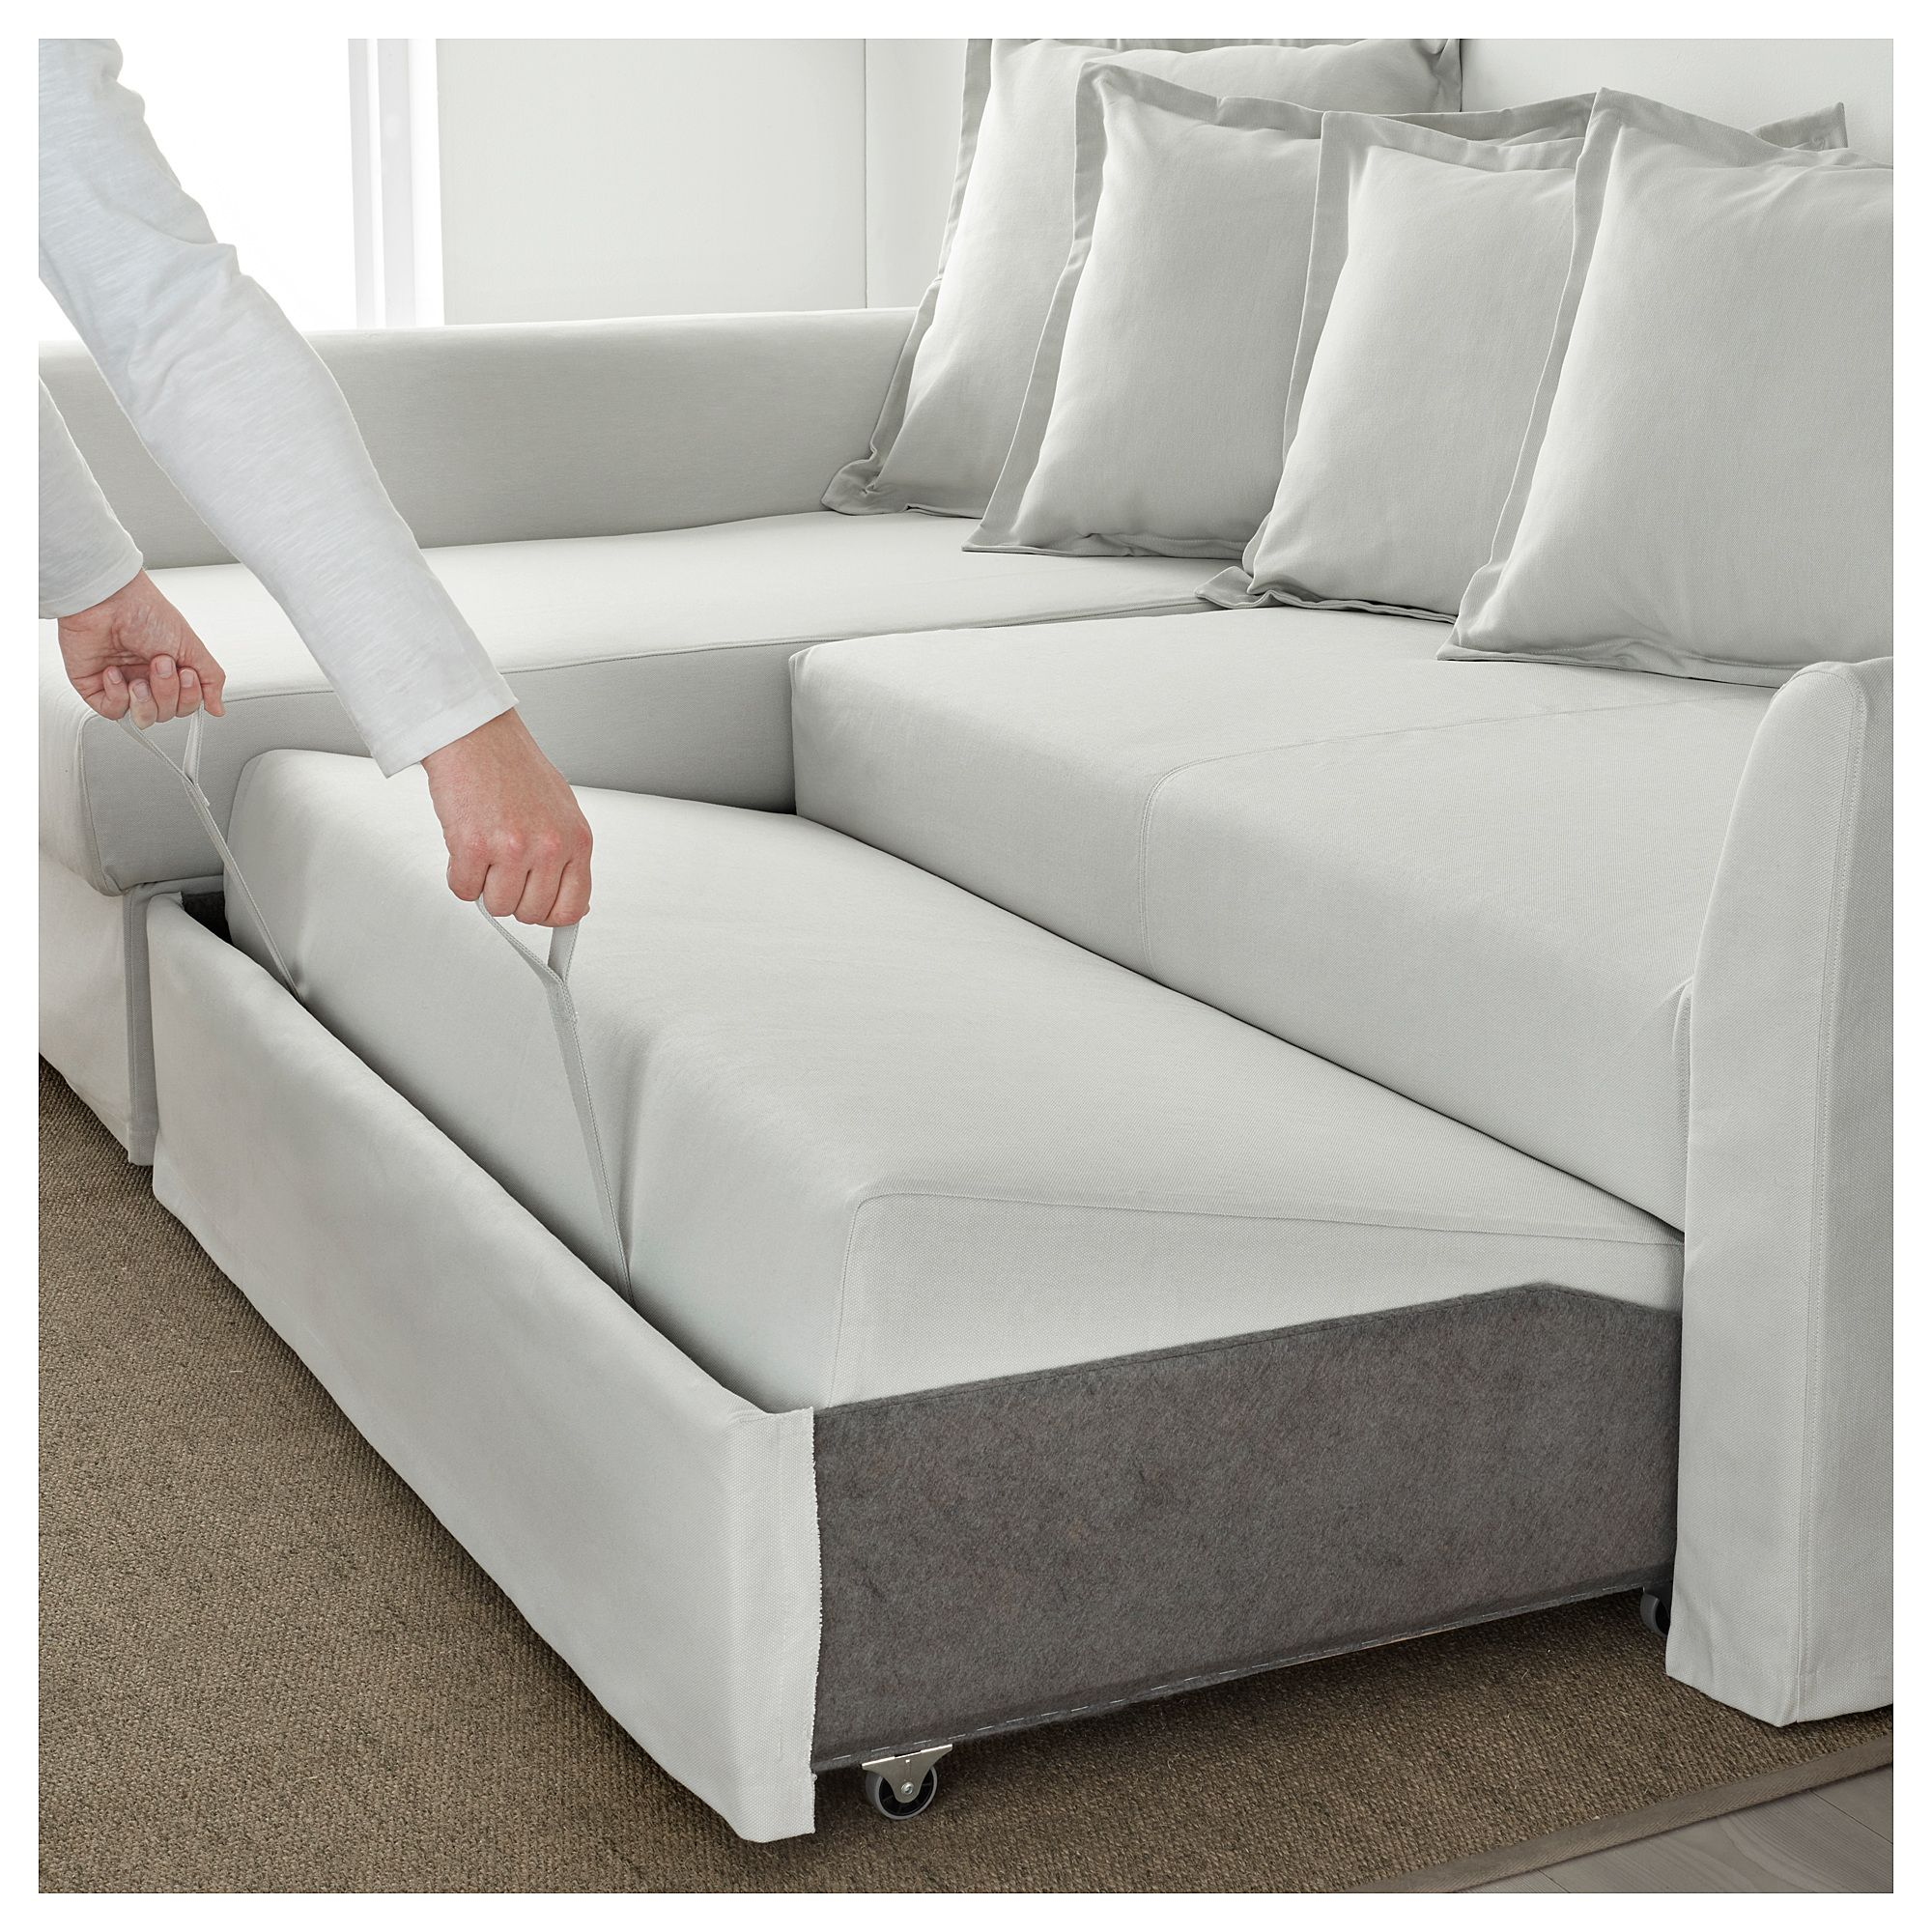 Holmsund Corner Sofa Bed Orrsta Light White Gray Ikea Sectional Sleeper Sofa Corner Sofa Bed Sleeper Sectional